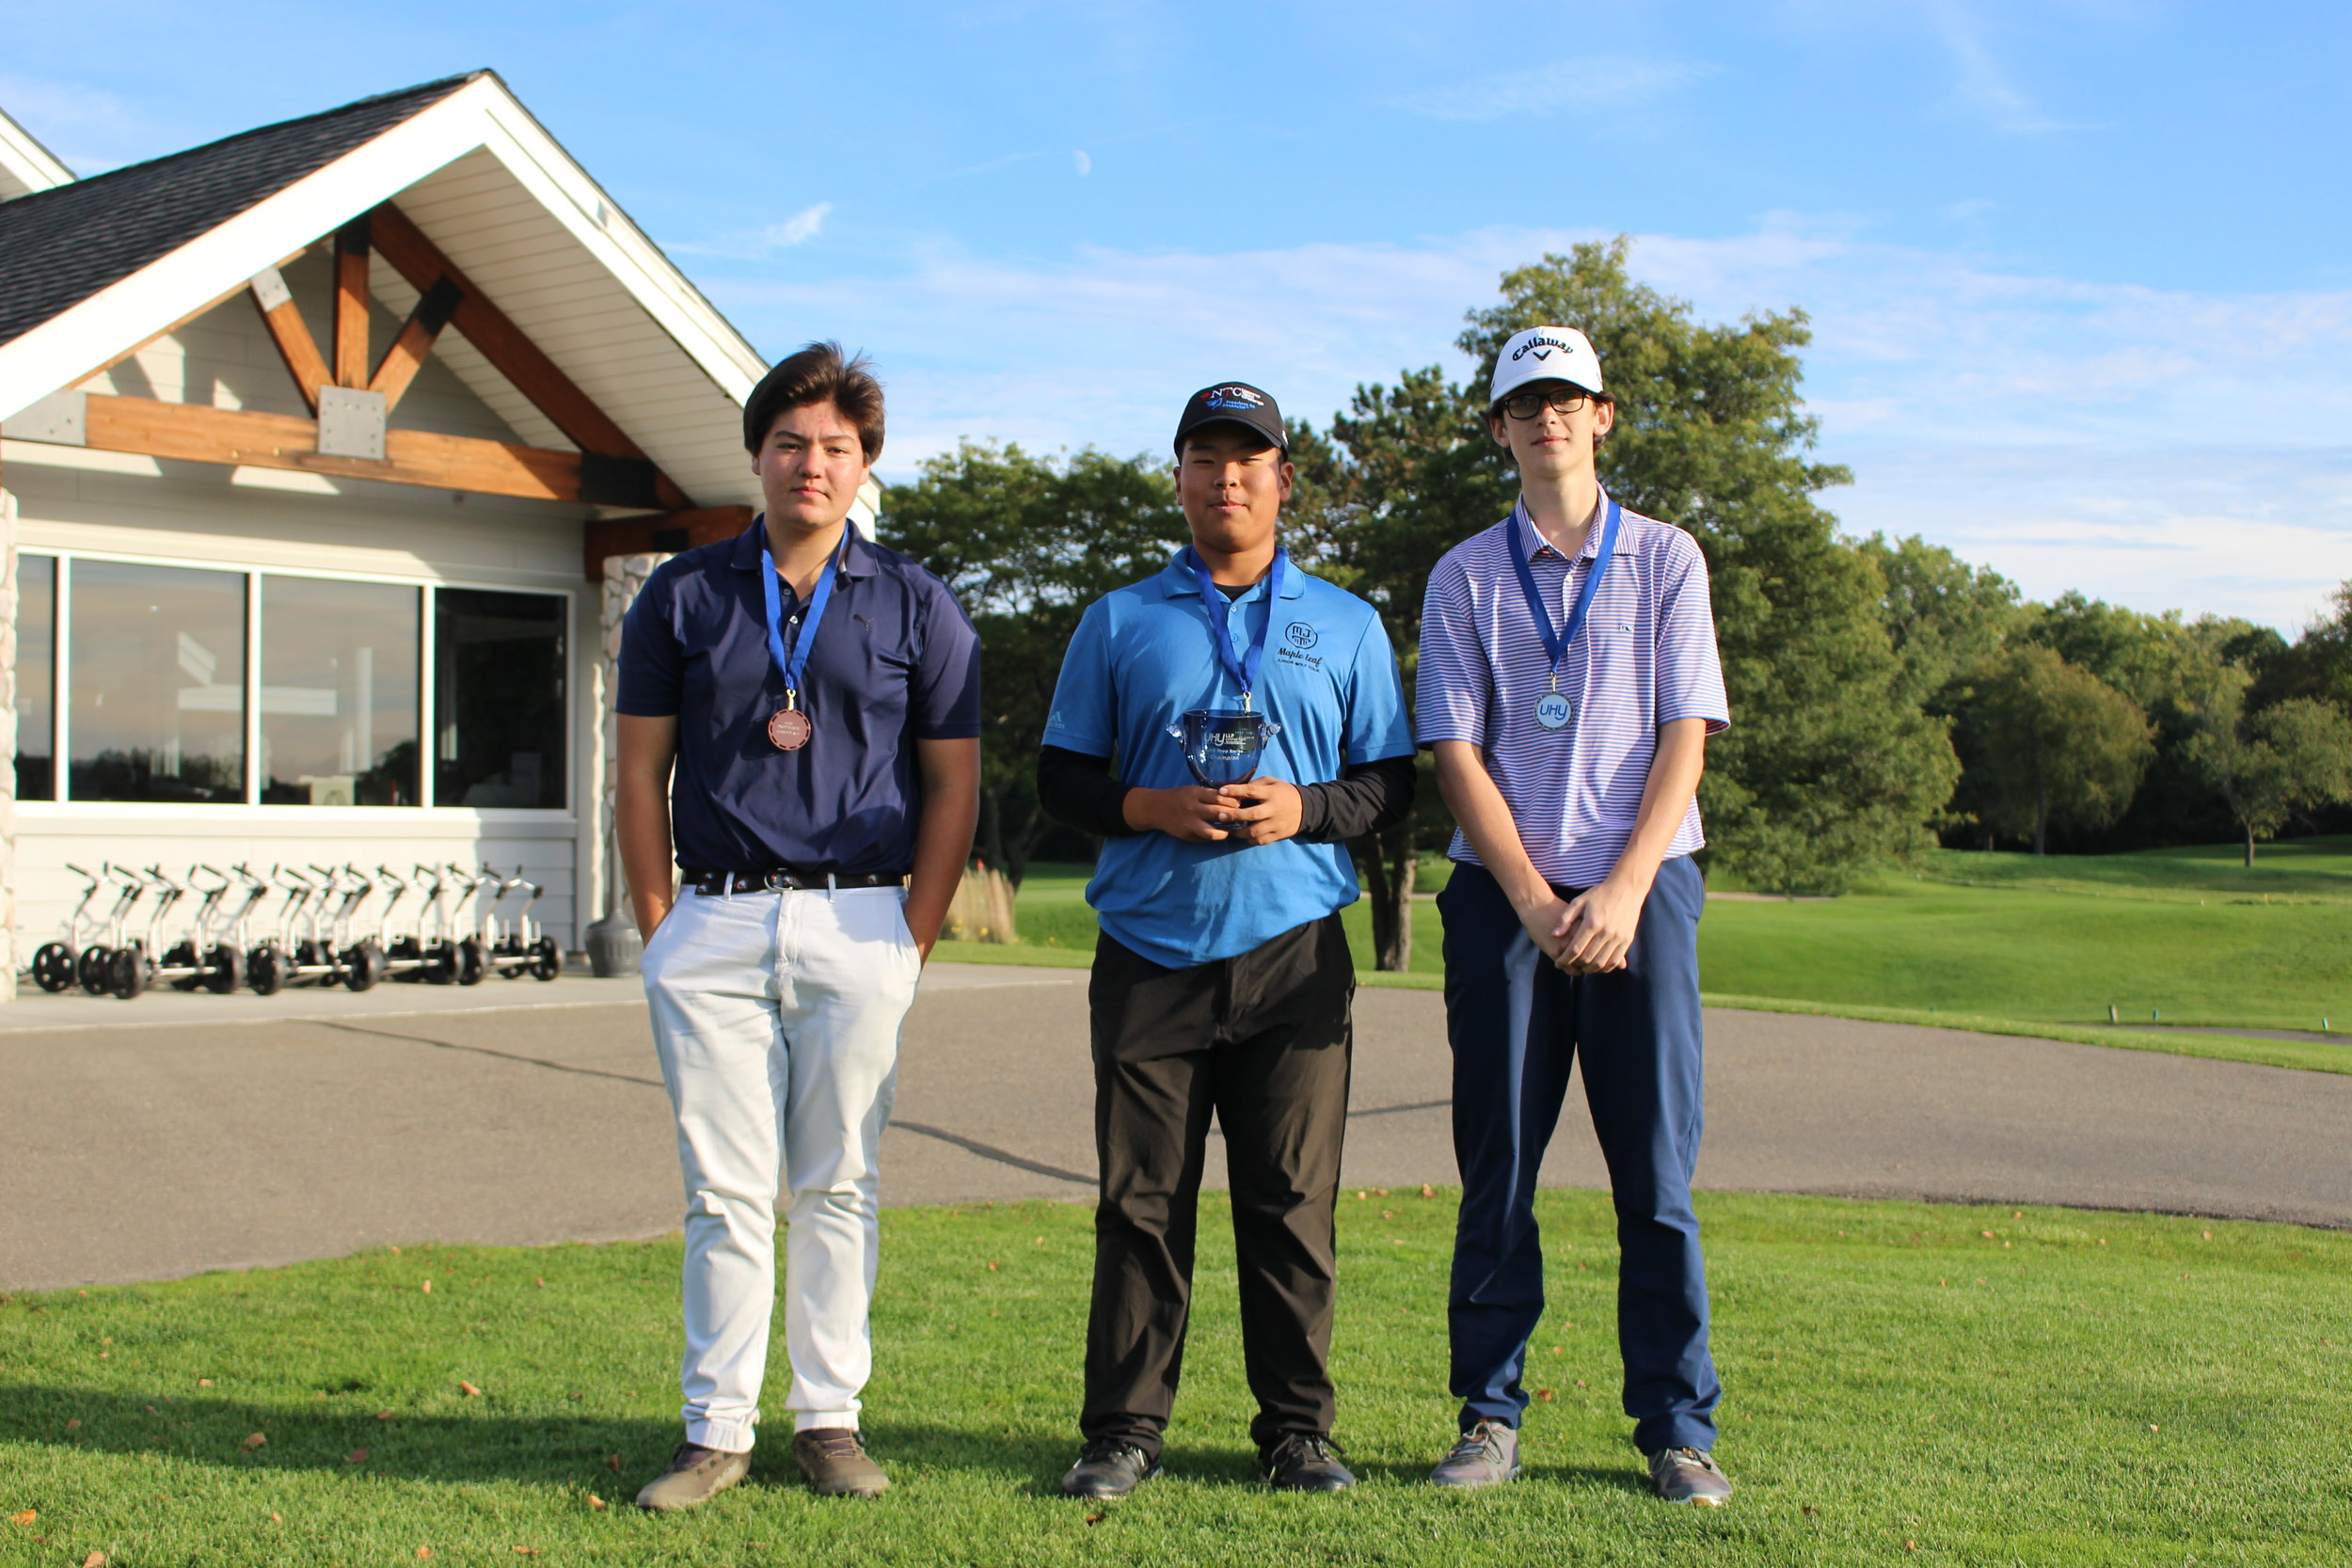 Eric Yun from Richmond Hill, Ontario was the boys champion with a 146 total (74-72). Brockton English was runner-up (74-76-150), while Matt Baer finished third (79-76-155)